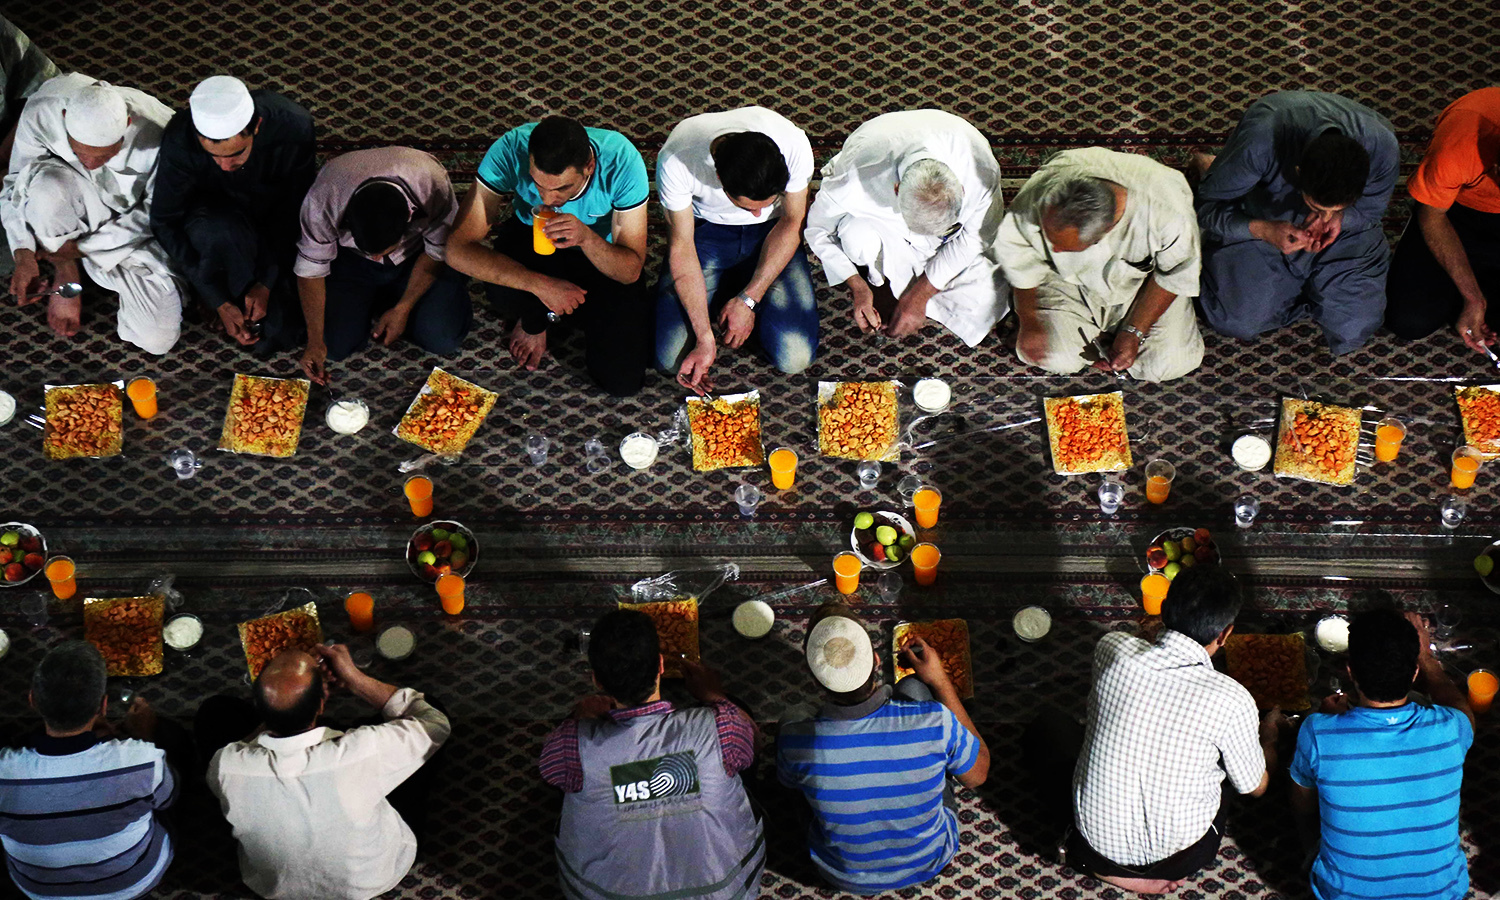 Syrian Muslim worshippers break the fast with an Iftar dinner distributed by a charity at a mosque on June 17, 2016 in the rebel-controlled town of Hamouria, in the eastern Ghouta region on the outskirts of the capital Damascus. ─ AFP